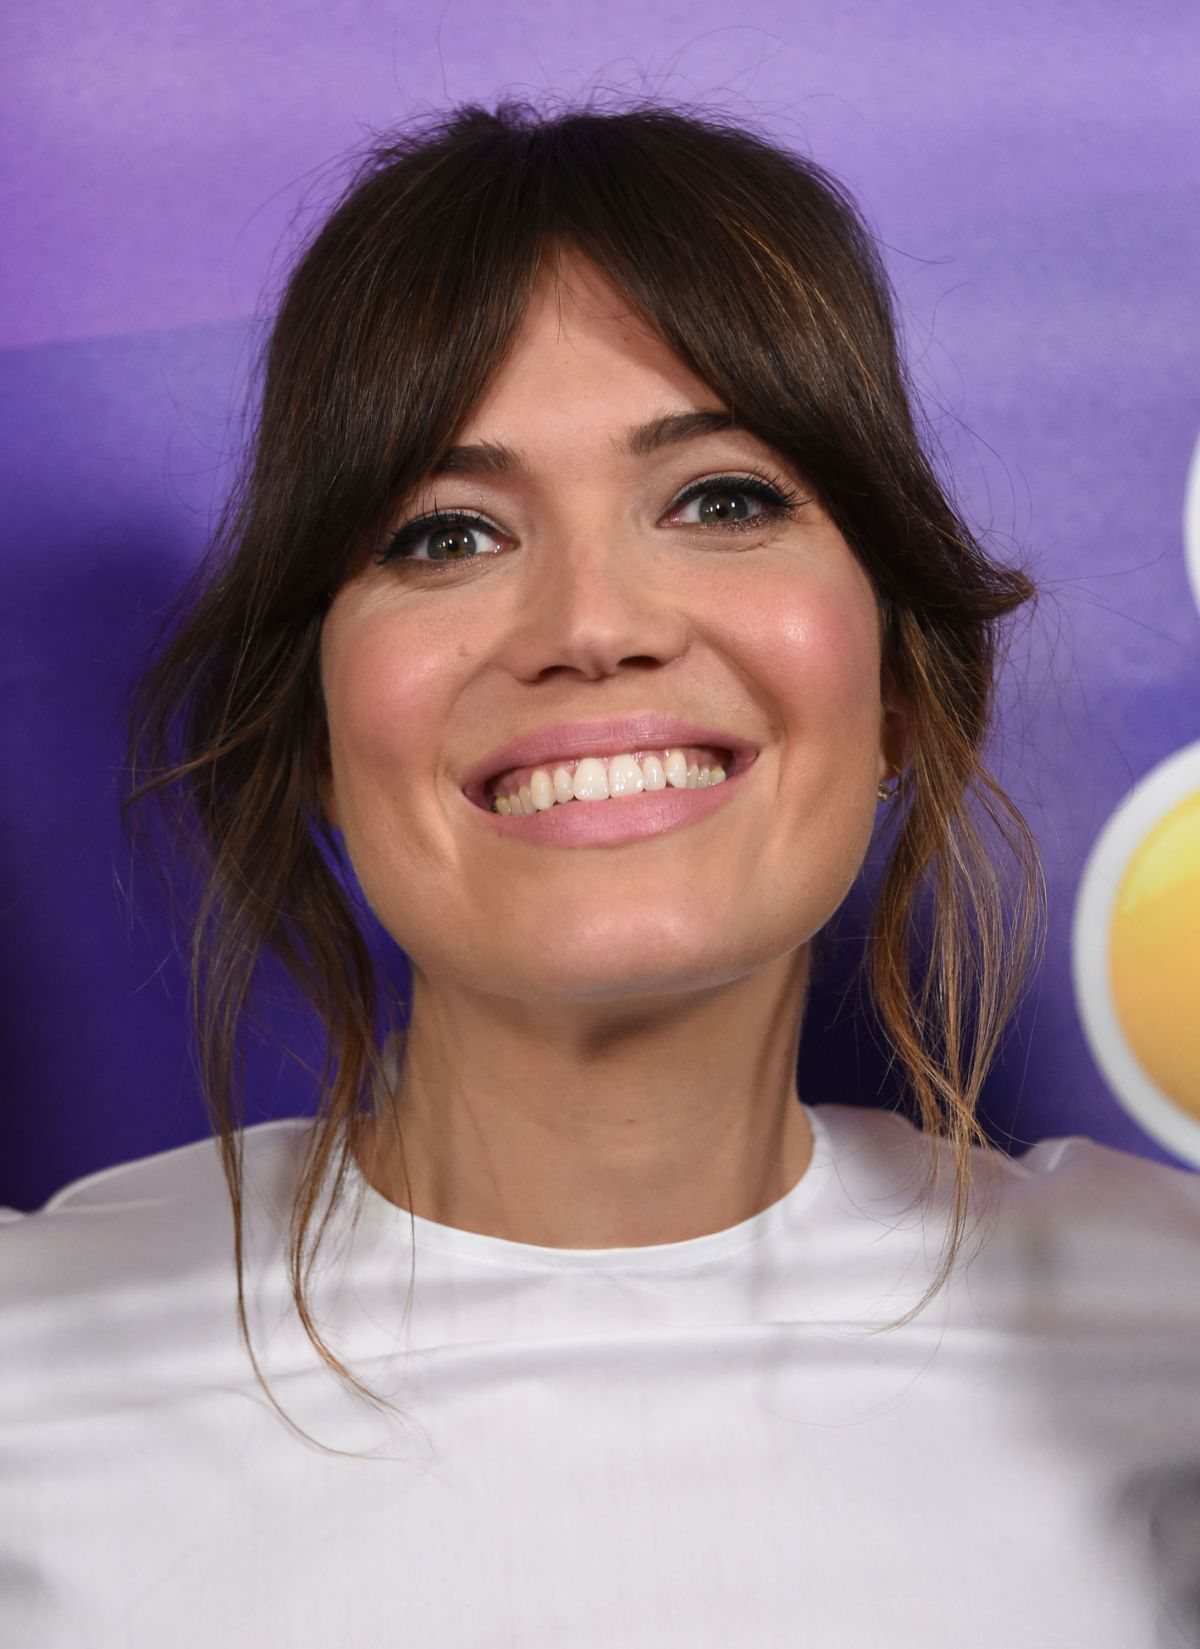 MANDY MOORE at NBC/Universal Press Day at 2016 Summer TCA Tour in Beverly Hills 08/02/2016